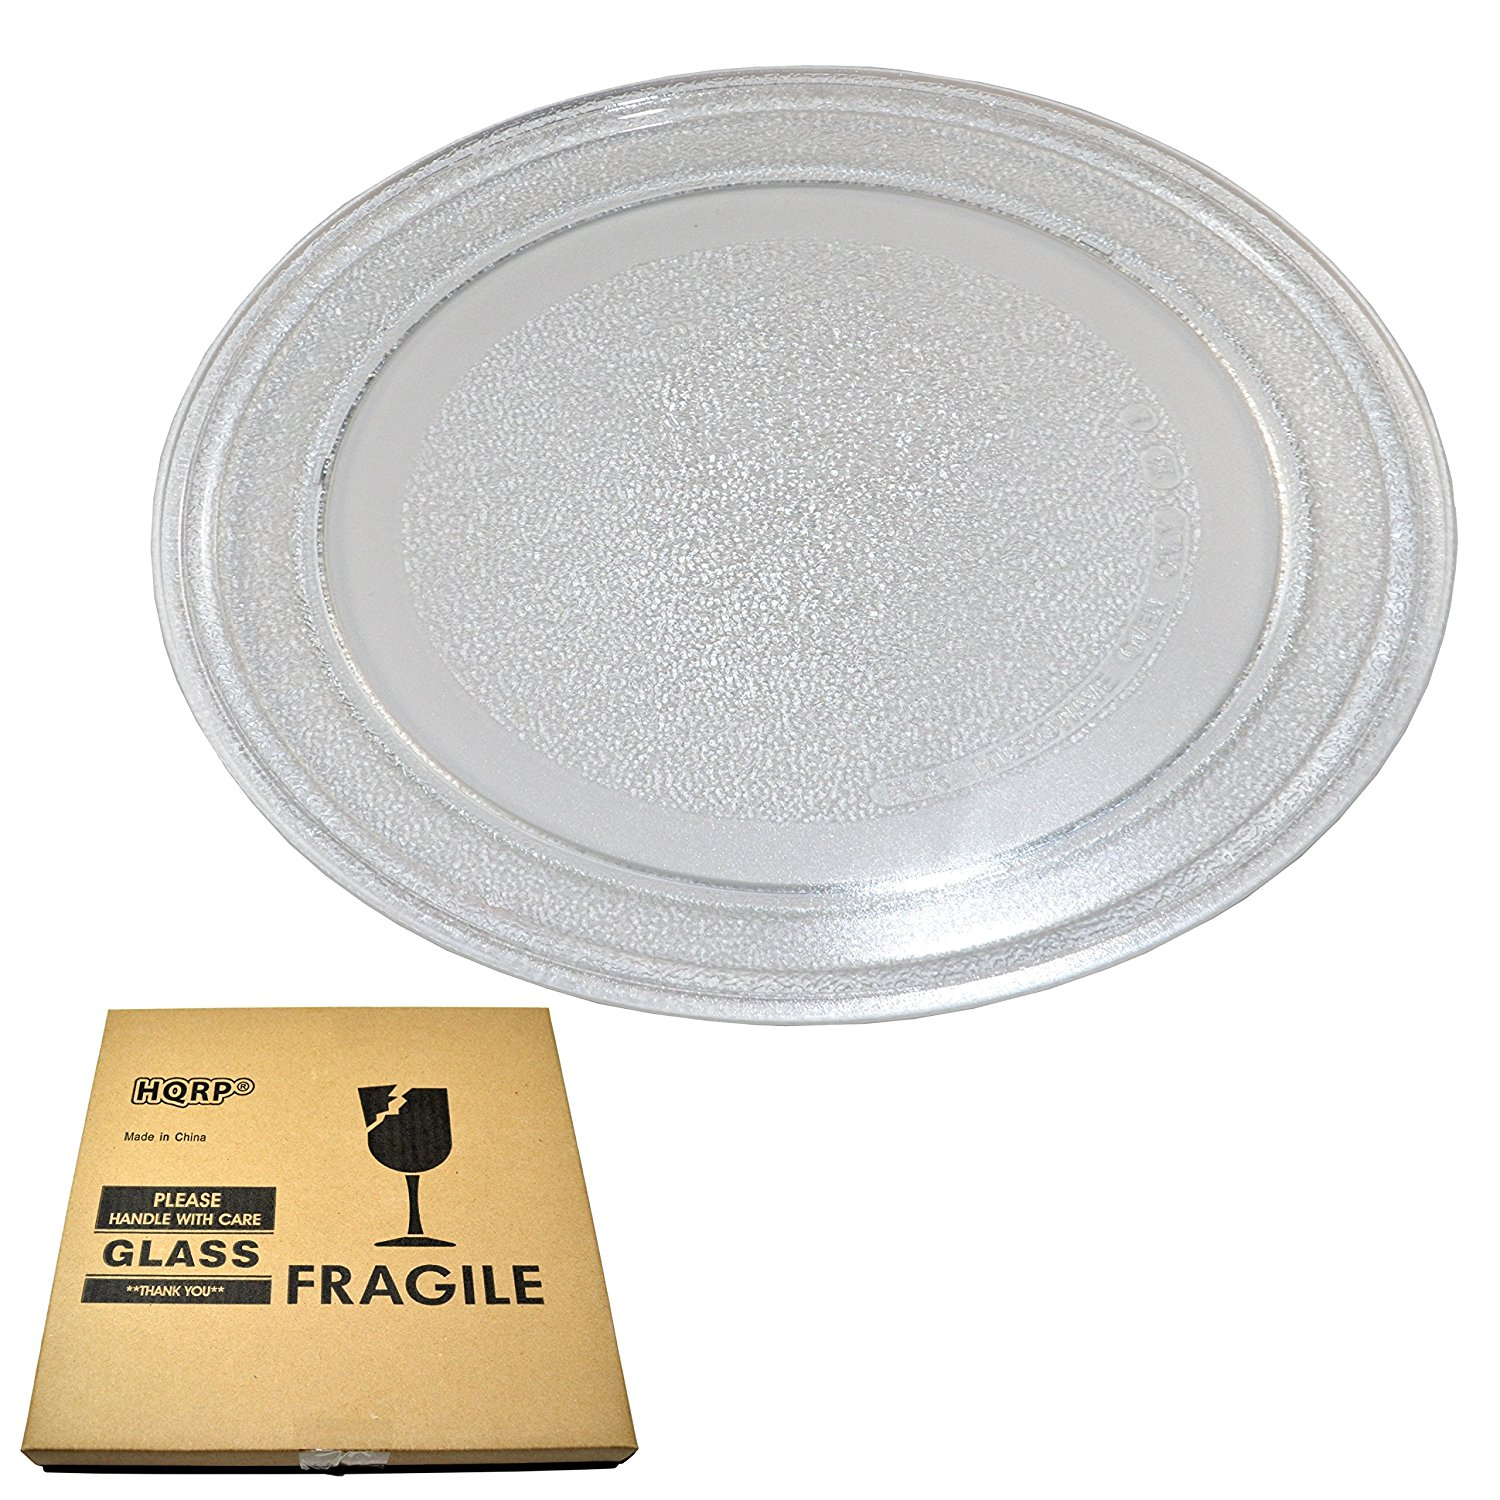 hqrp 9 5 8 inch glass turntable tray for ge wb49x10134 jes735bj01 jes735bj02 jes735wj01 jes735wj02 jes738wj01 jes738wj02 jes739wj01 jes0736sm1ss